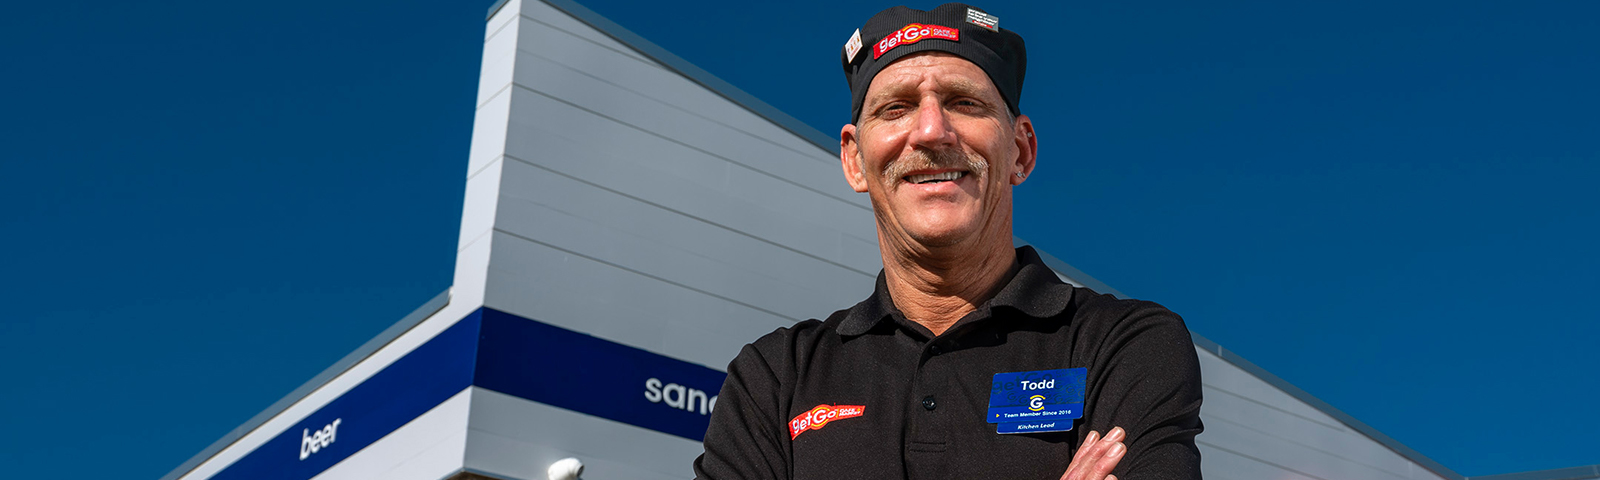 Man outside of building in work uniform